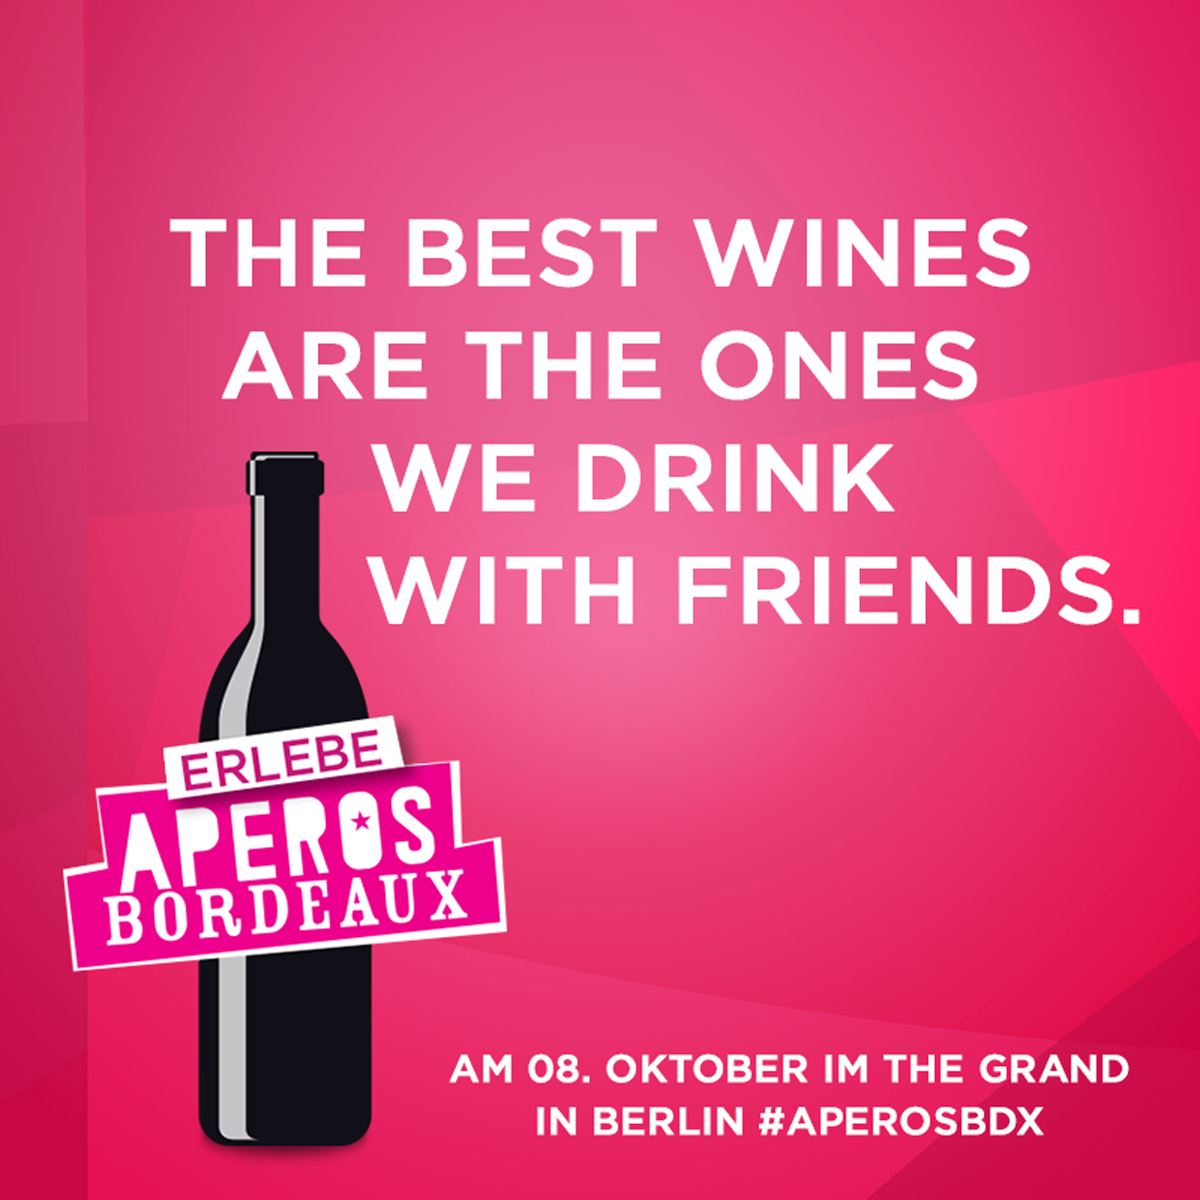 Apéros Bordeaux – Wine tasting in Berlin